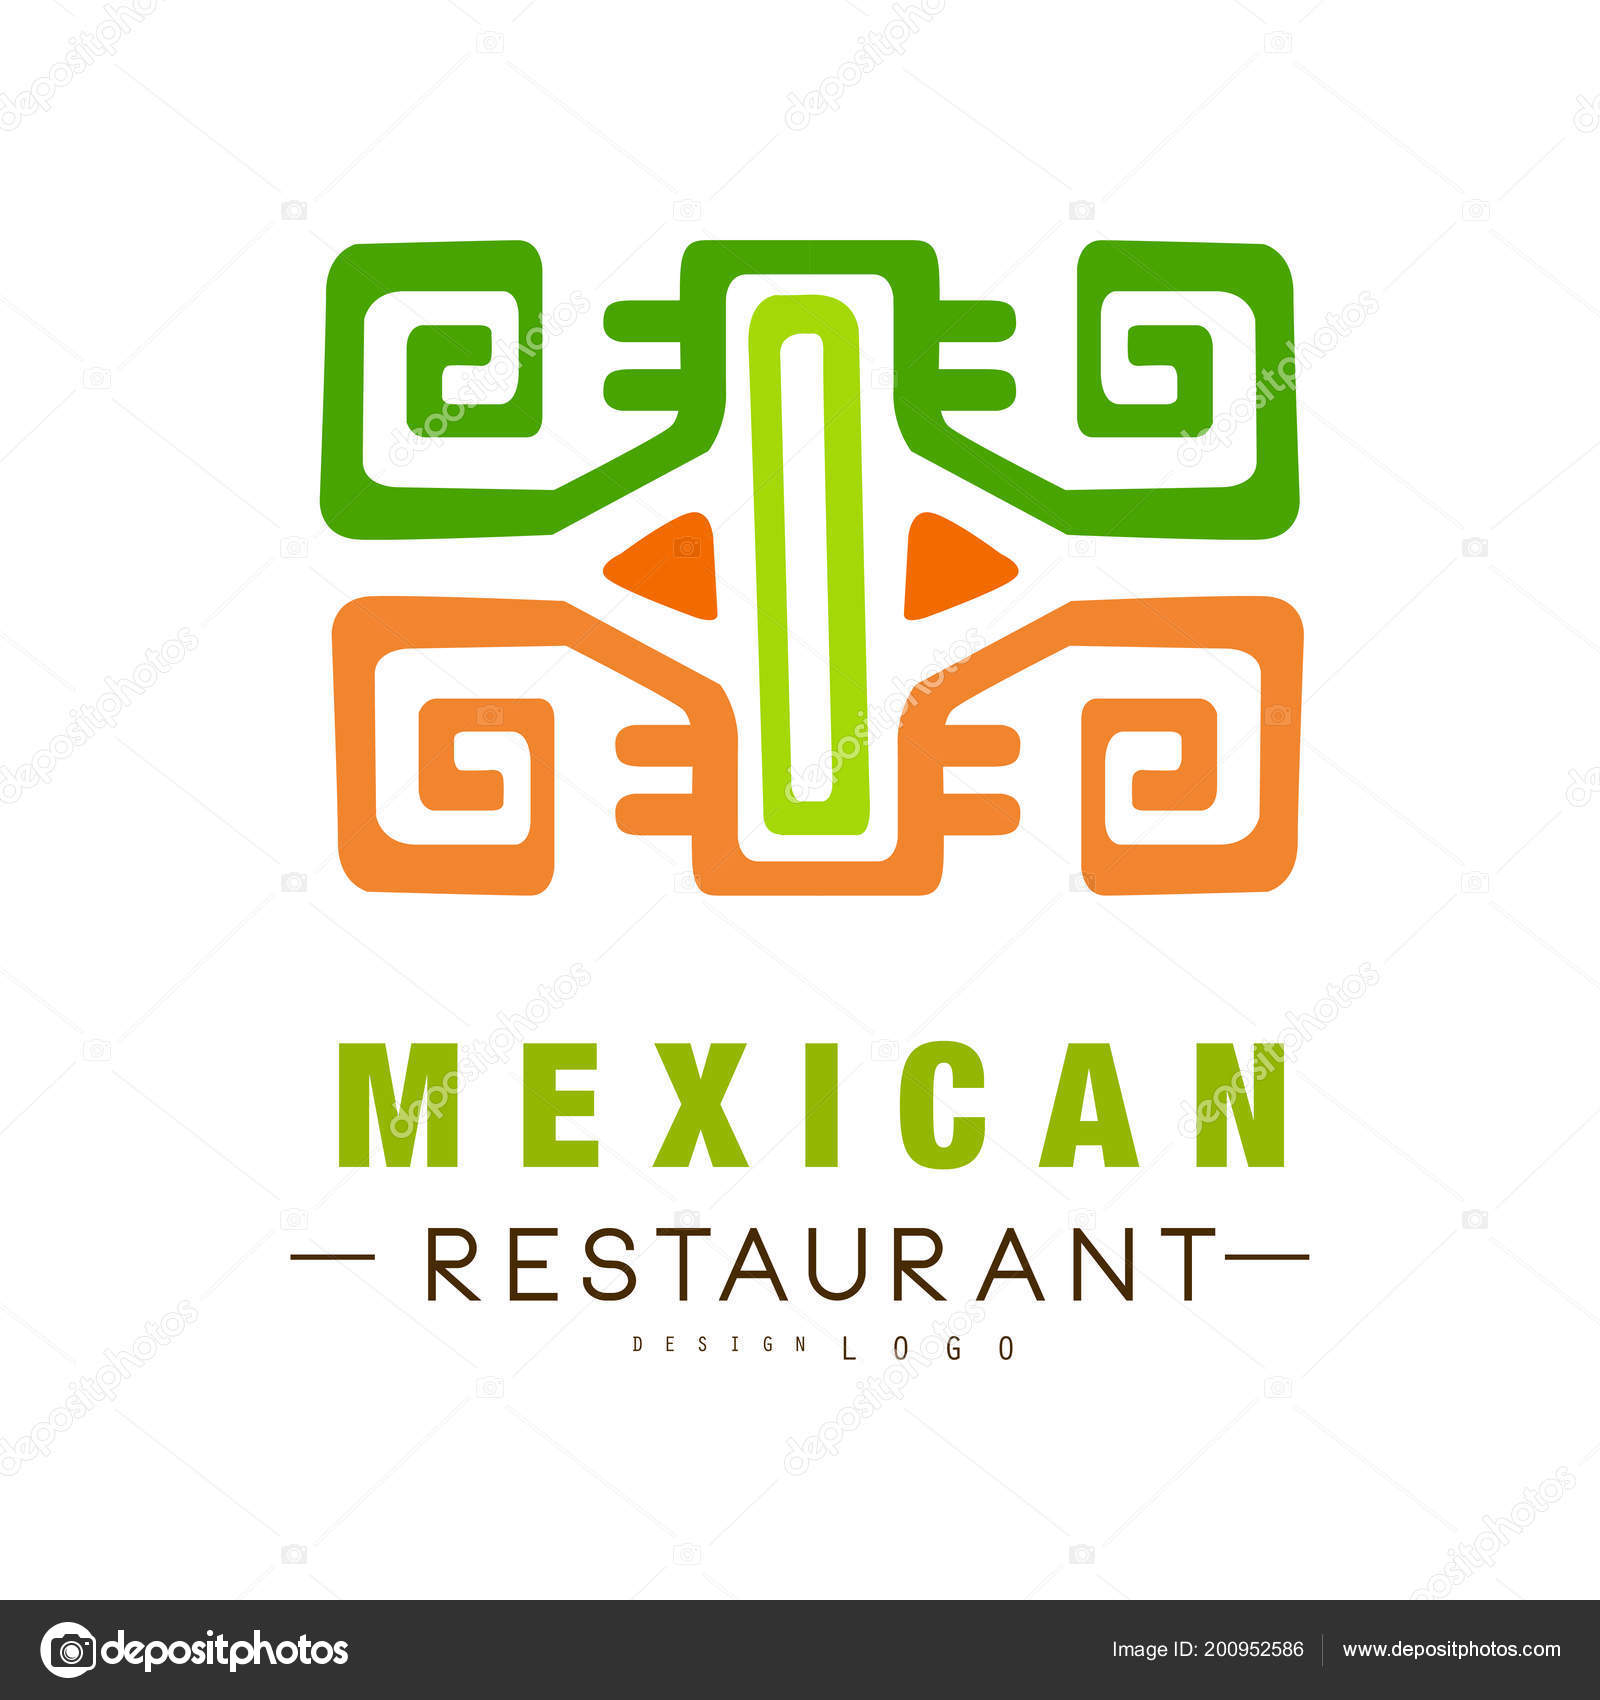 Mexican Restaurant Logo Design Authentic Traditional Continental Food Label Vector Illustration On A White Background Stock Vector C Topvectors 200952586